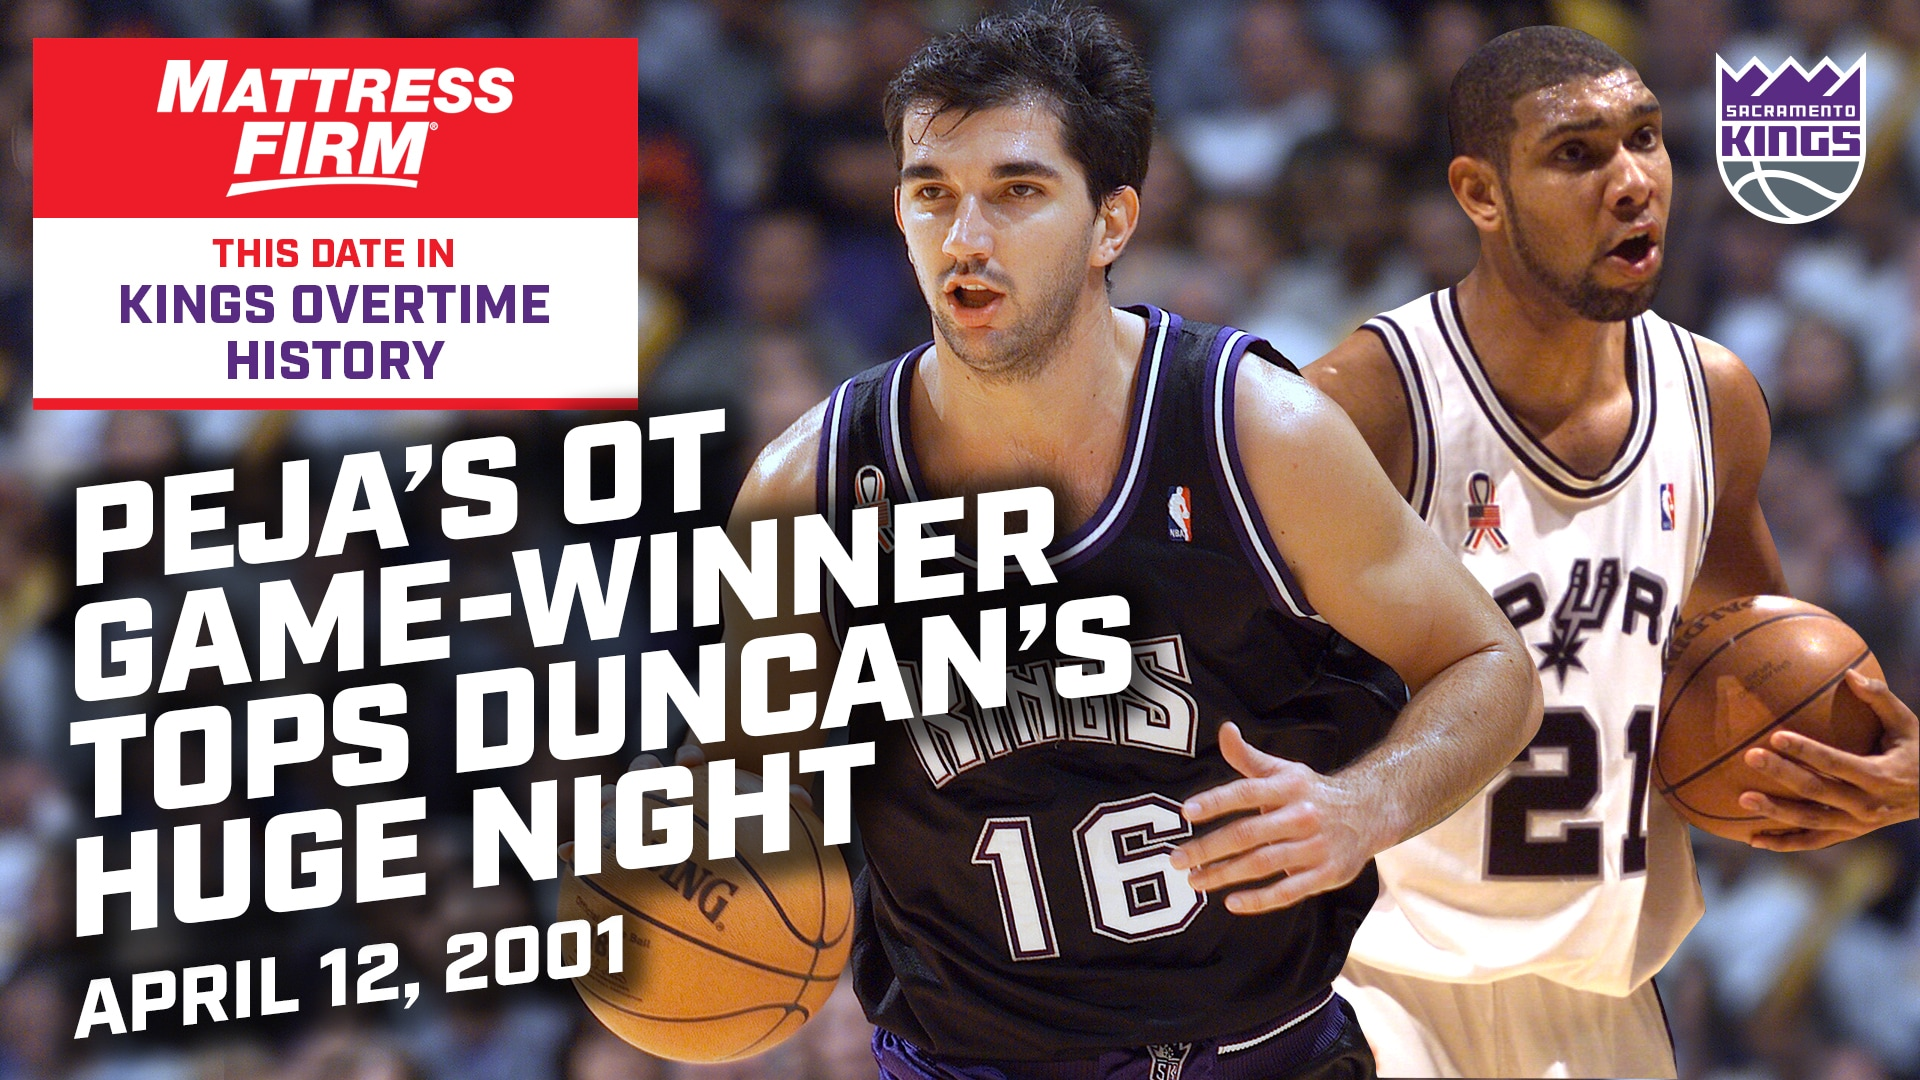 This Date in Kings OT History: Peja's Game-Winner Tops Duncan's 42